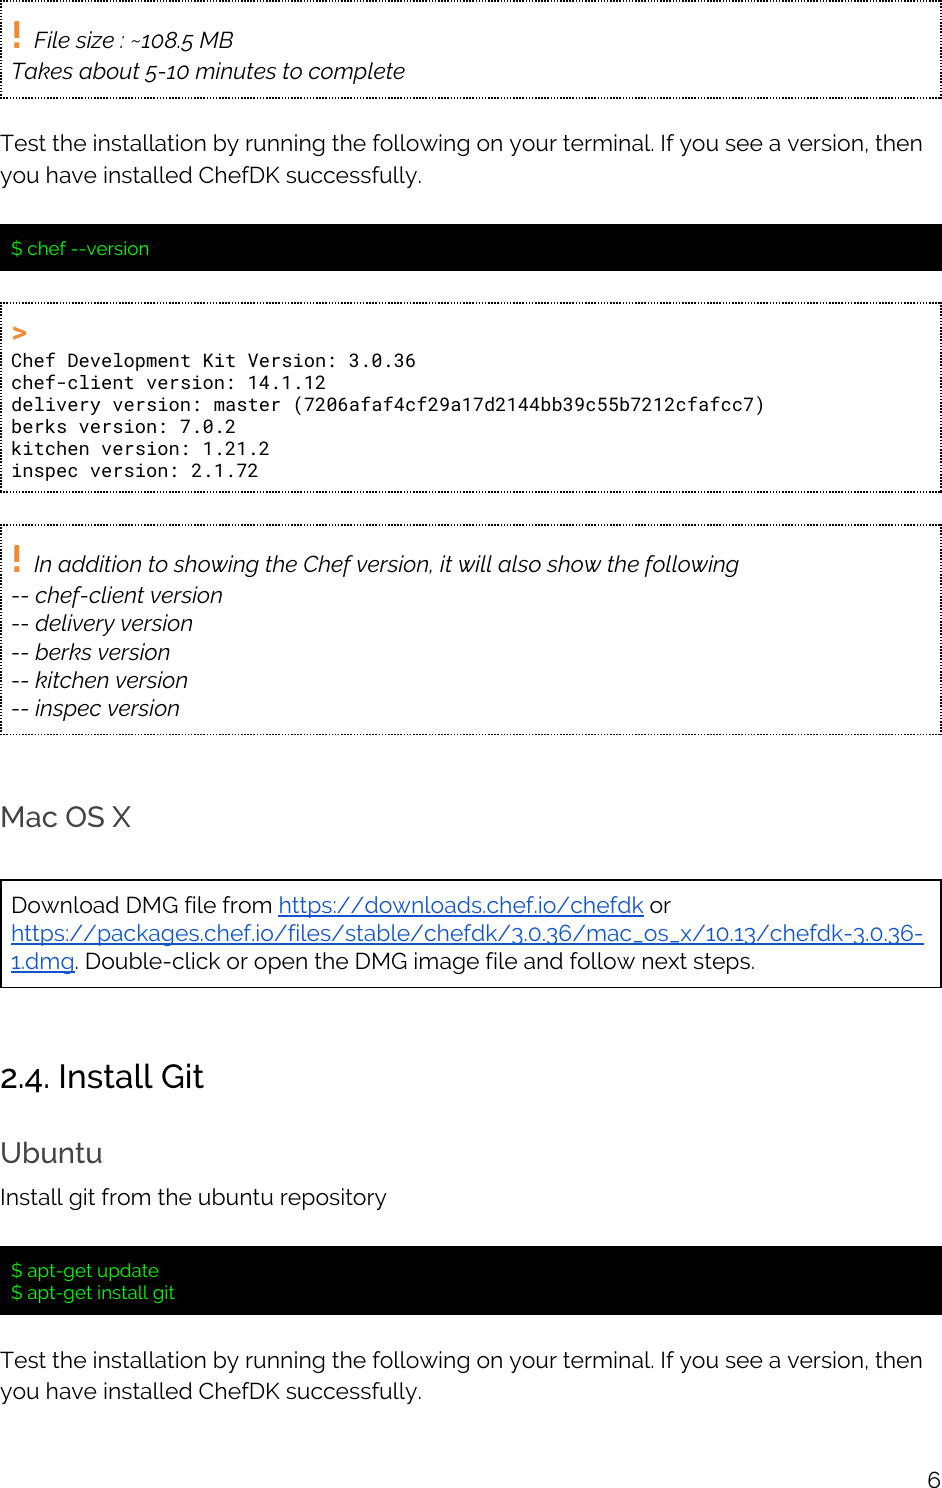 Chef 101 Installation And Configuration Guide